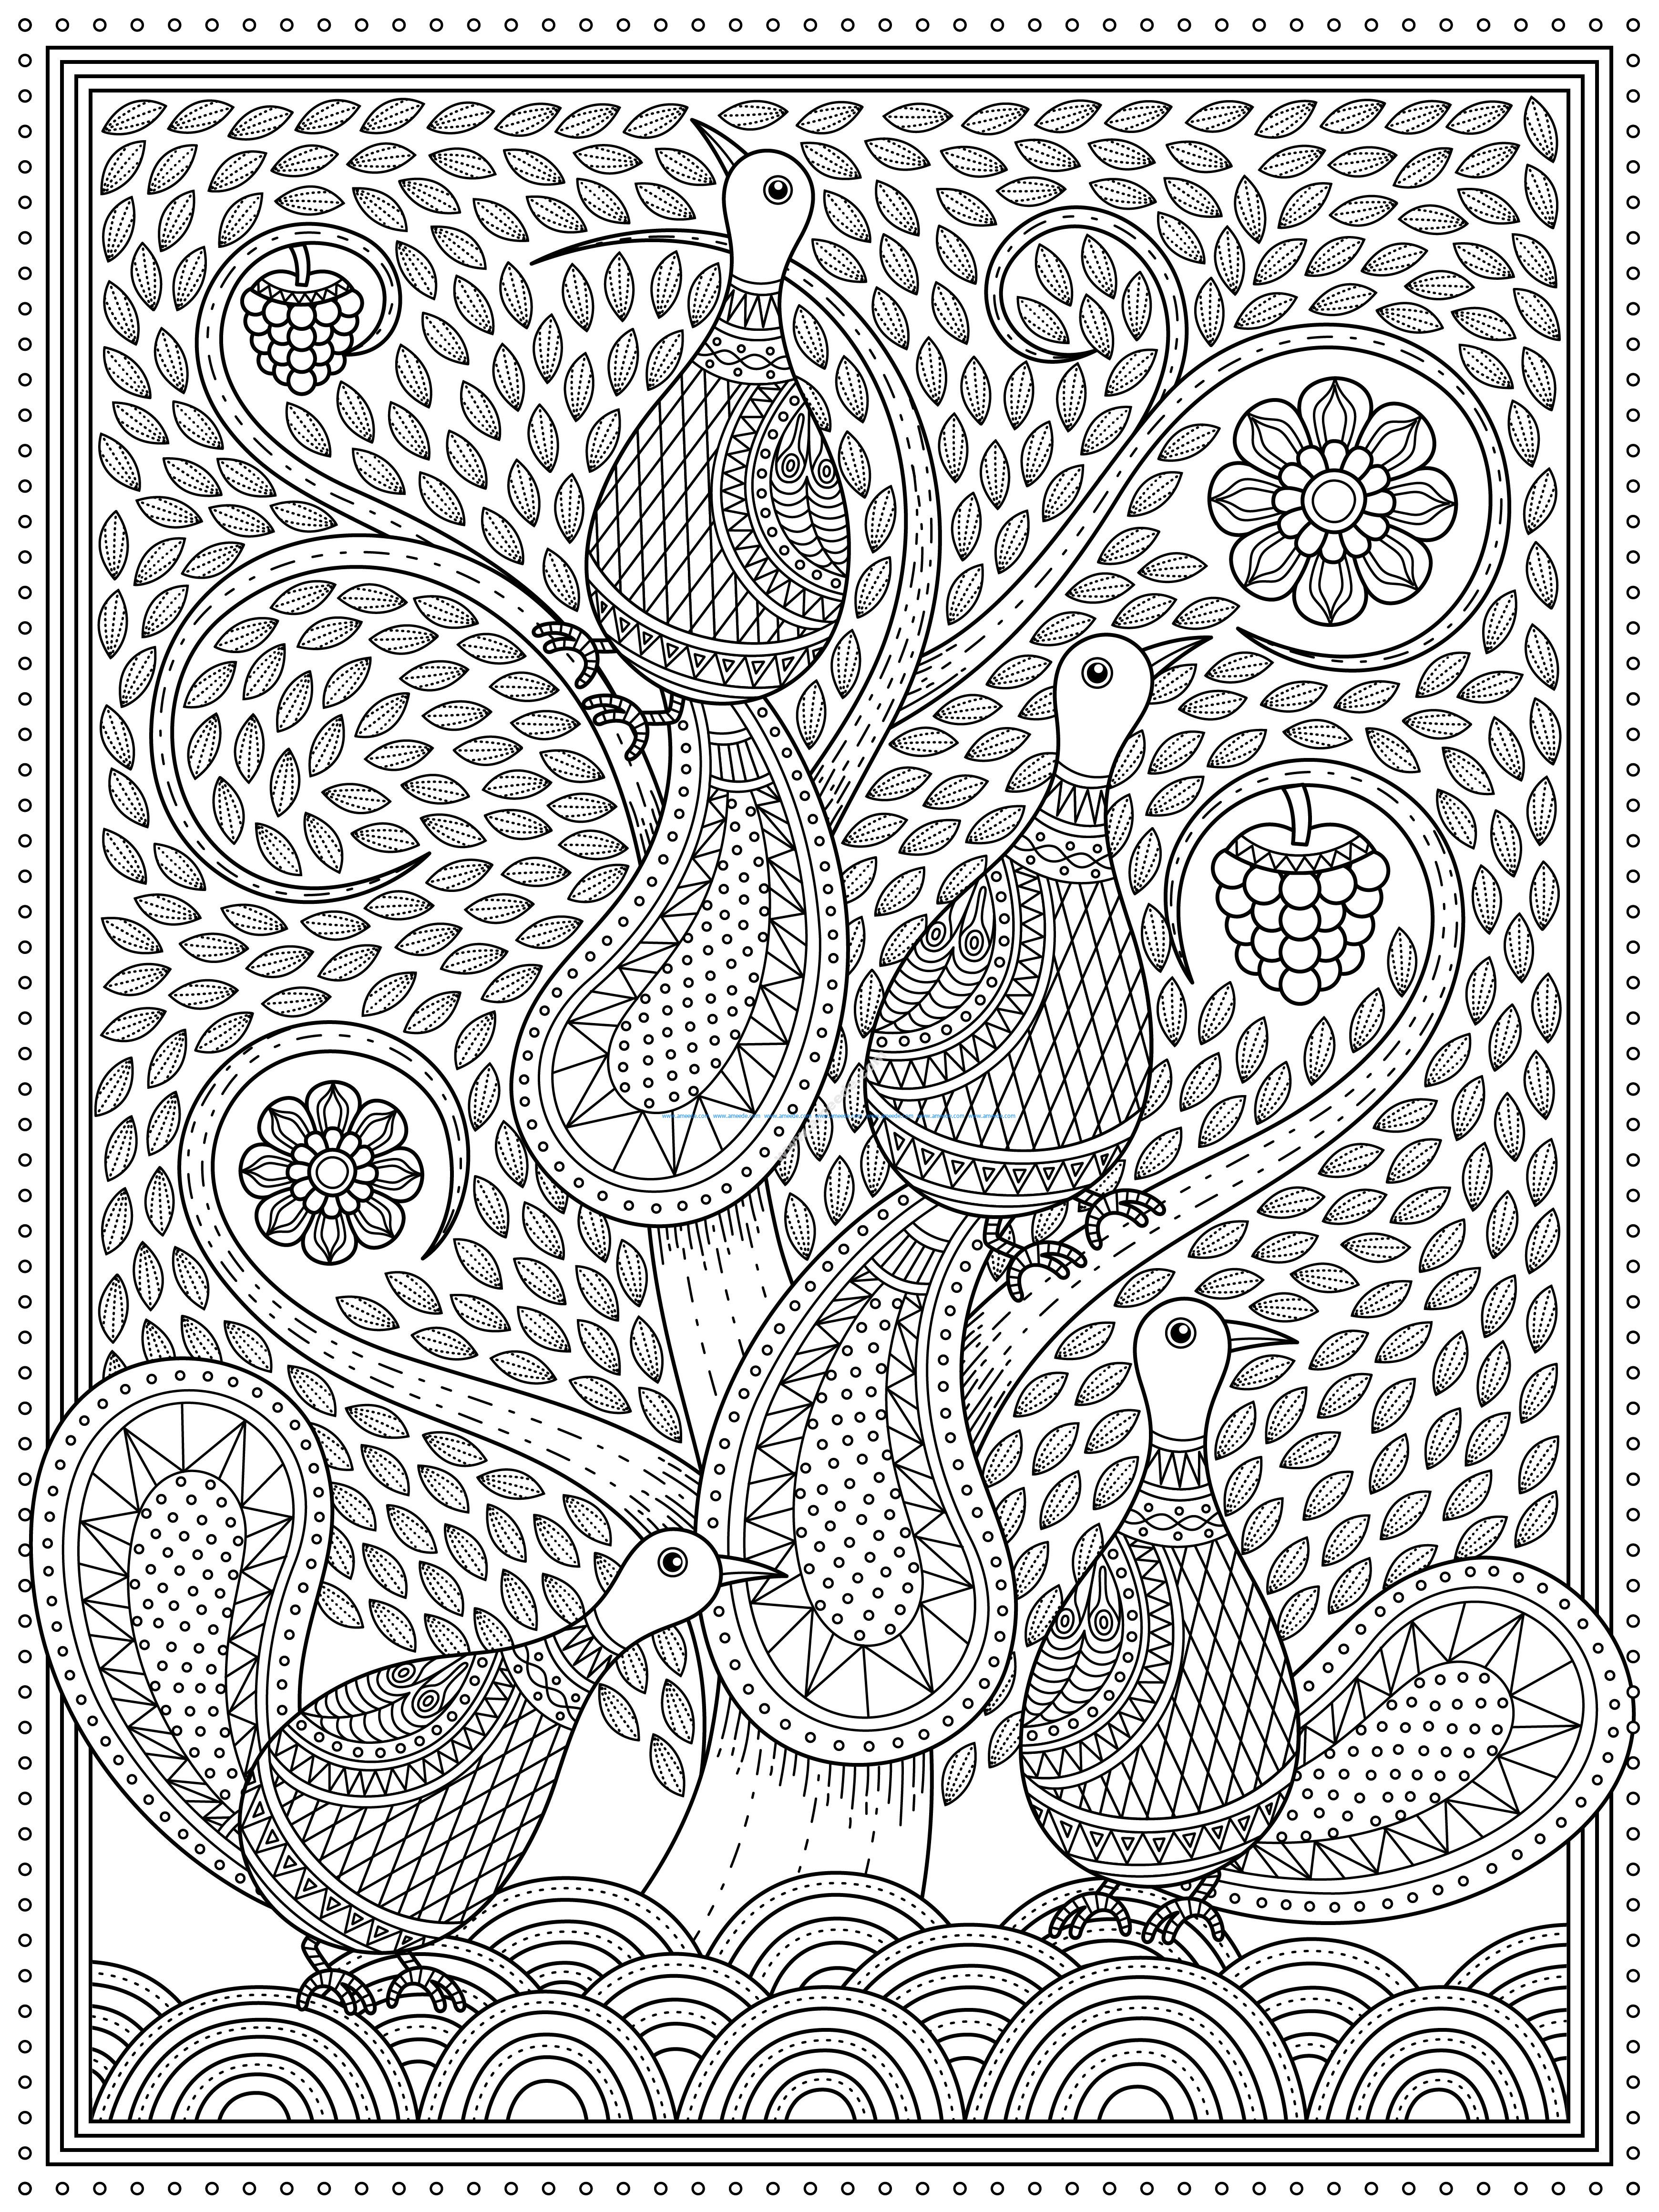 peacocks in the whirl tree